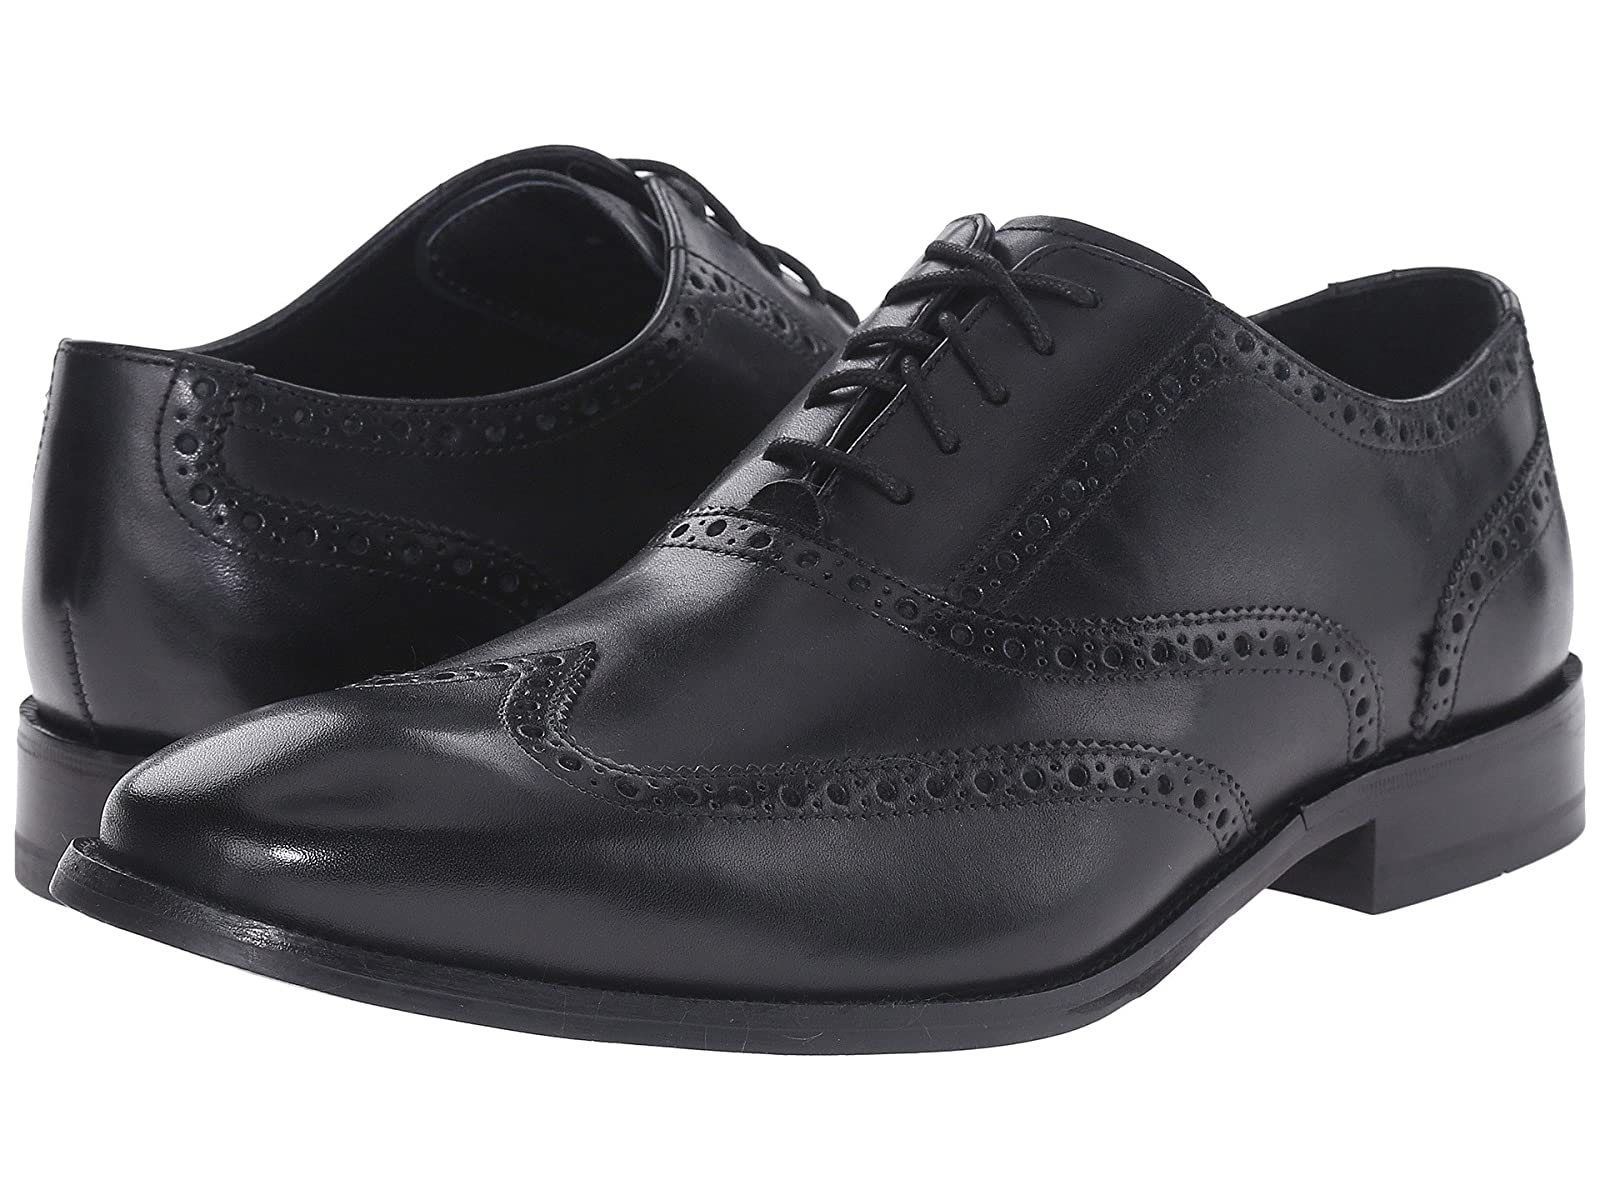 Cole Haan Williams WingtipCheap and distinctive eye-catching shoes